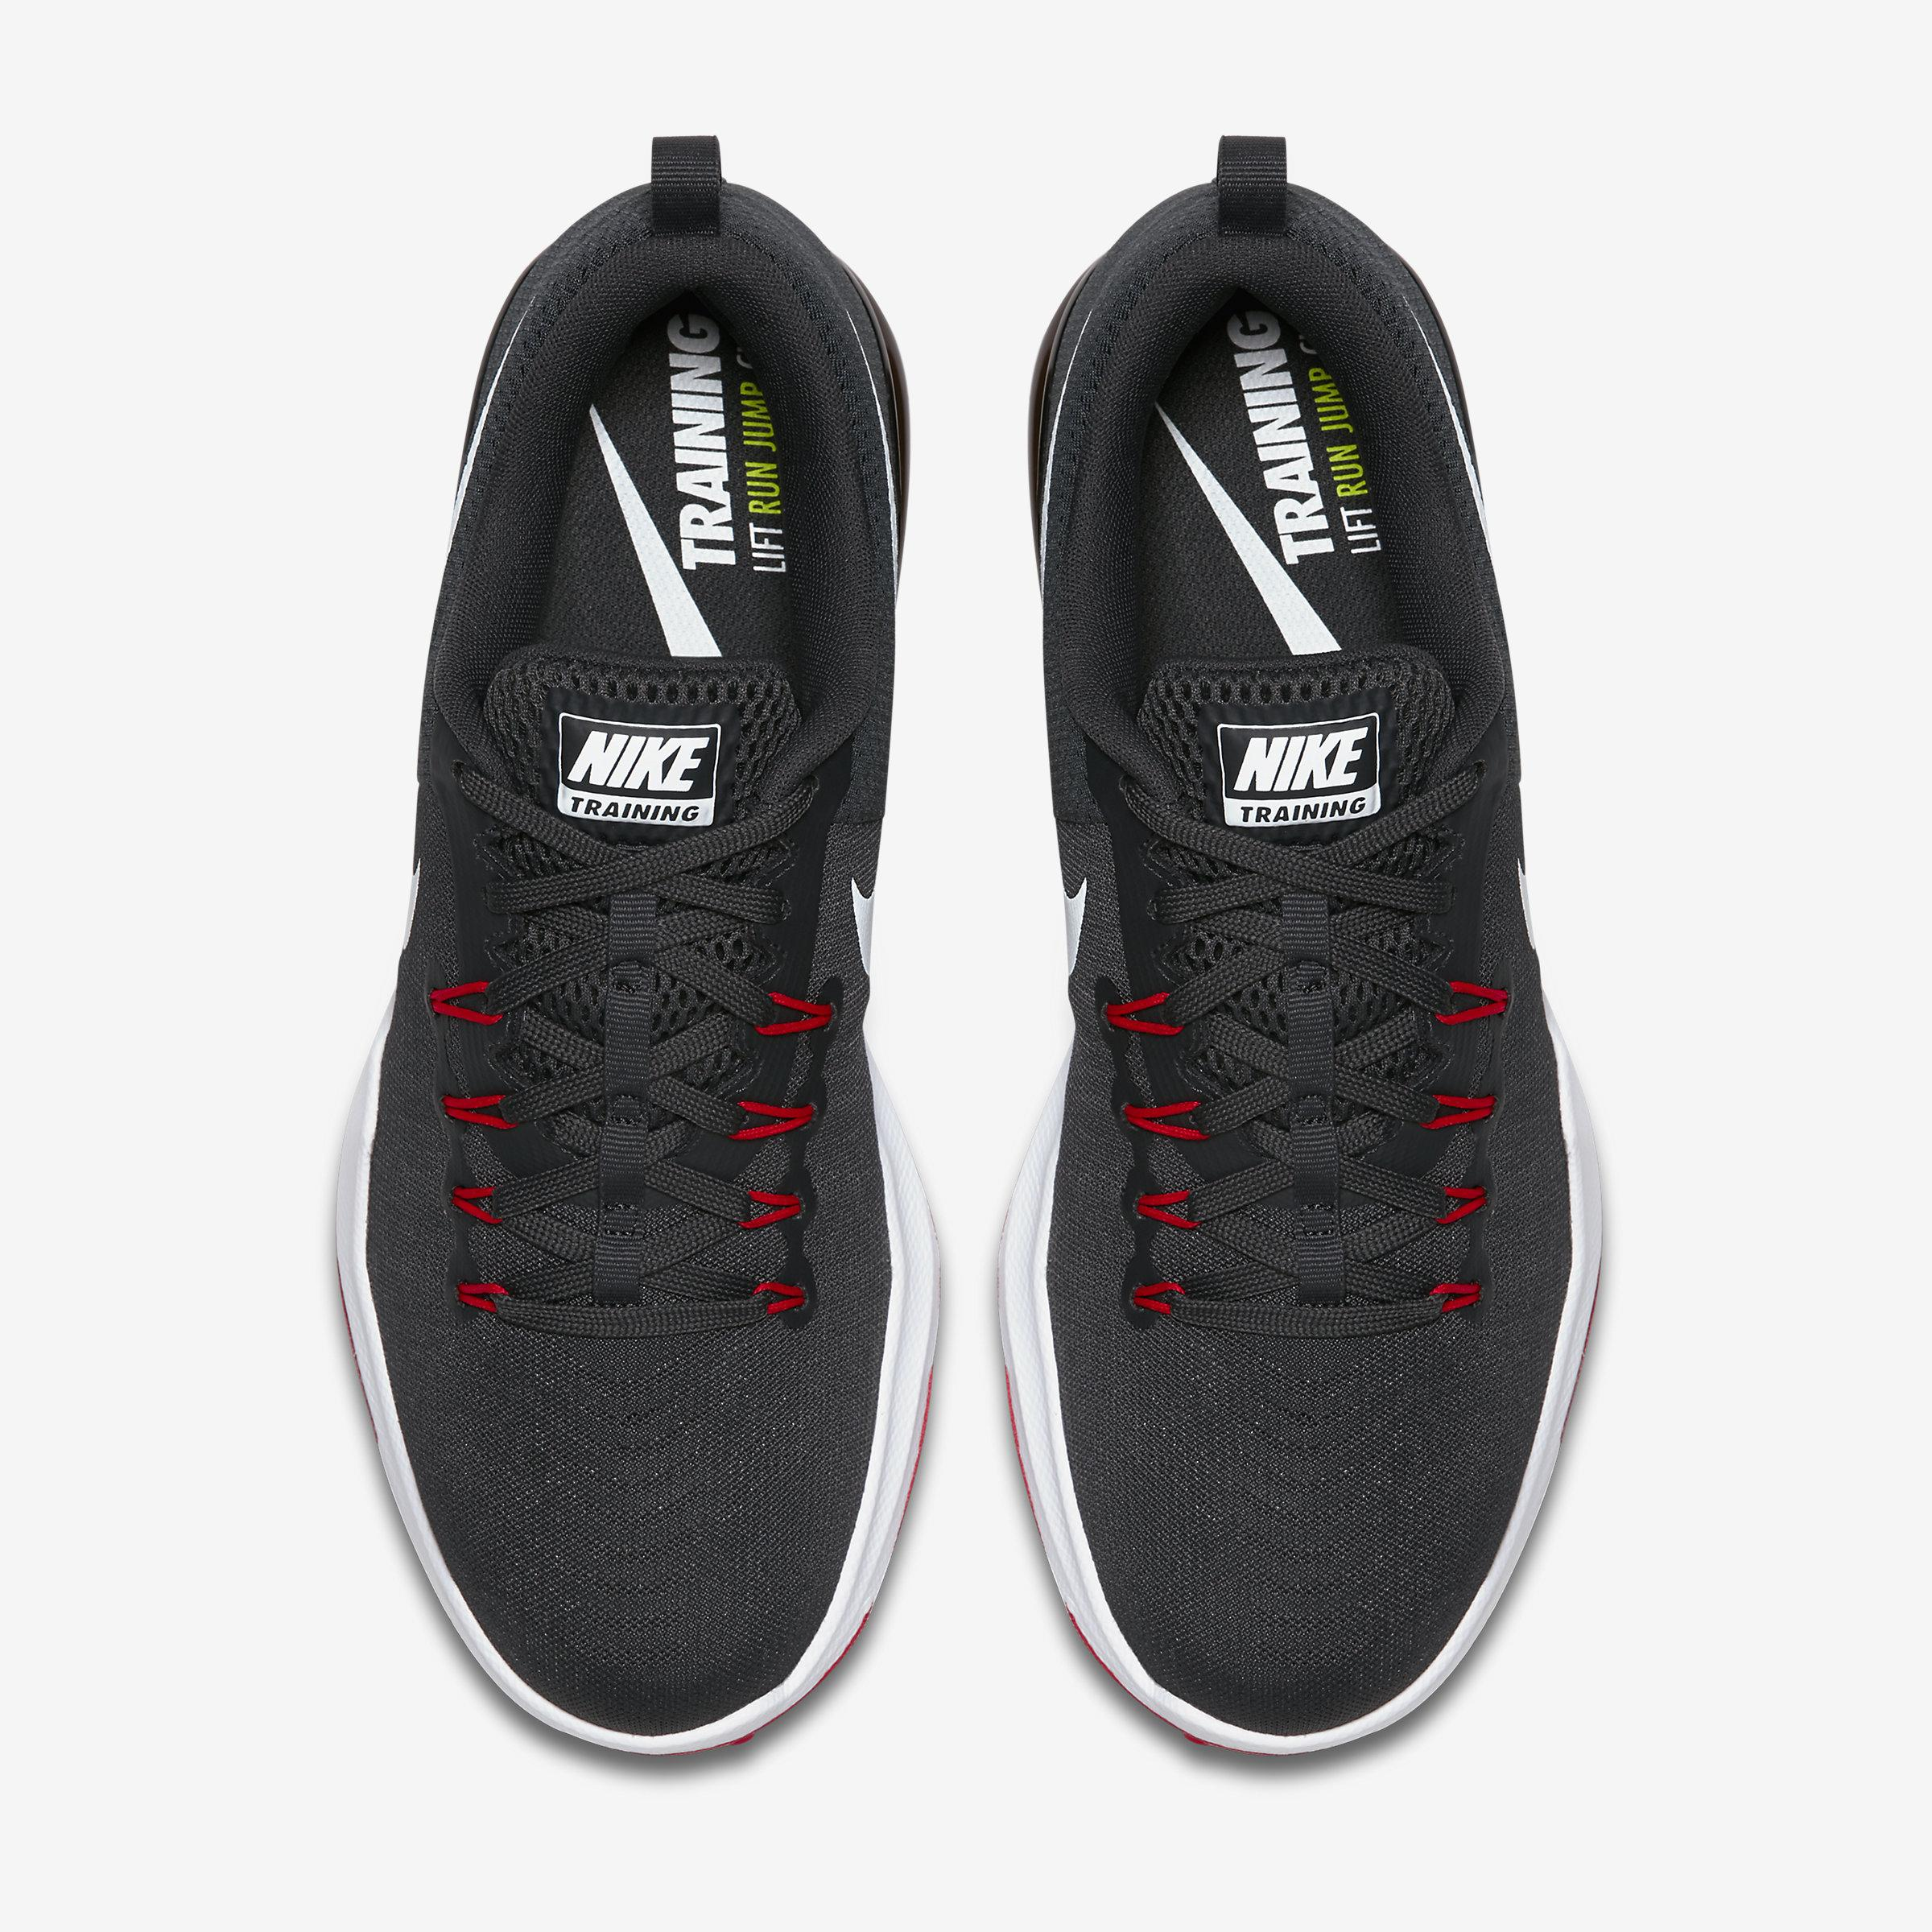 Nike Rubber Zoom Train Action in Anthracite,University Red,Black, (Black) for Men